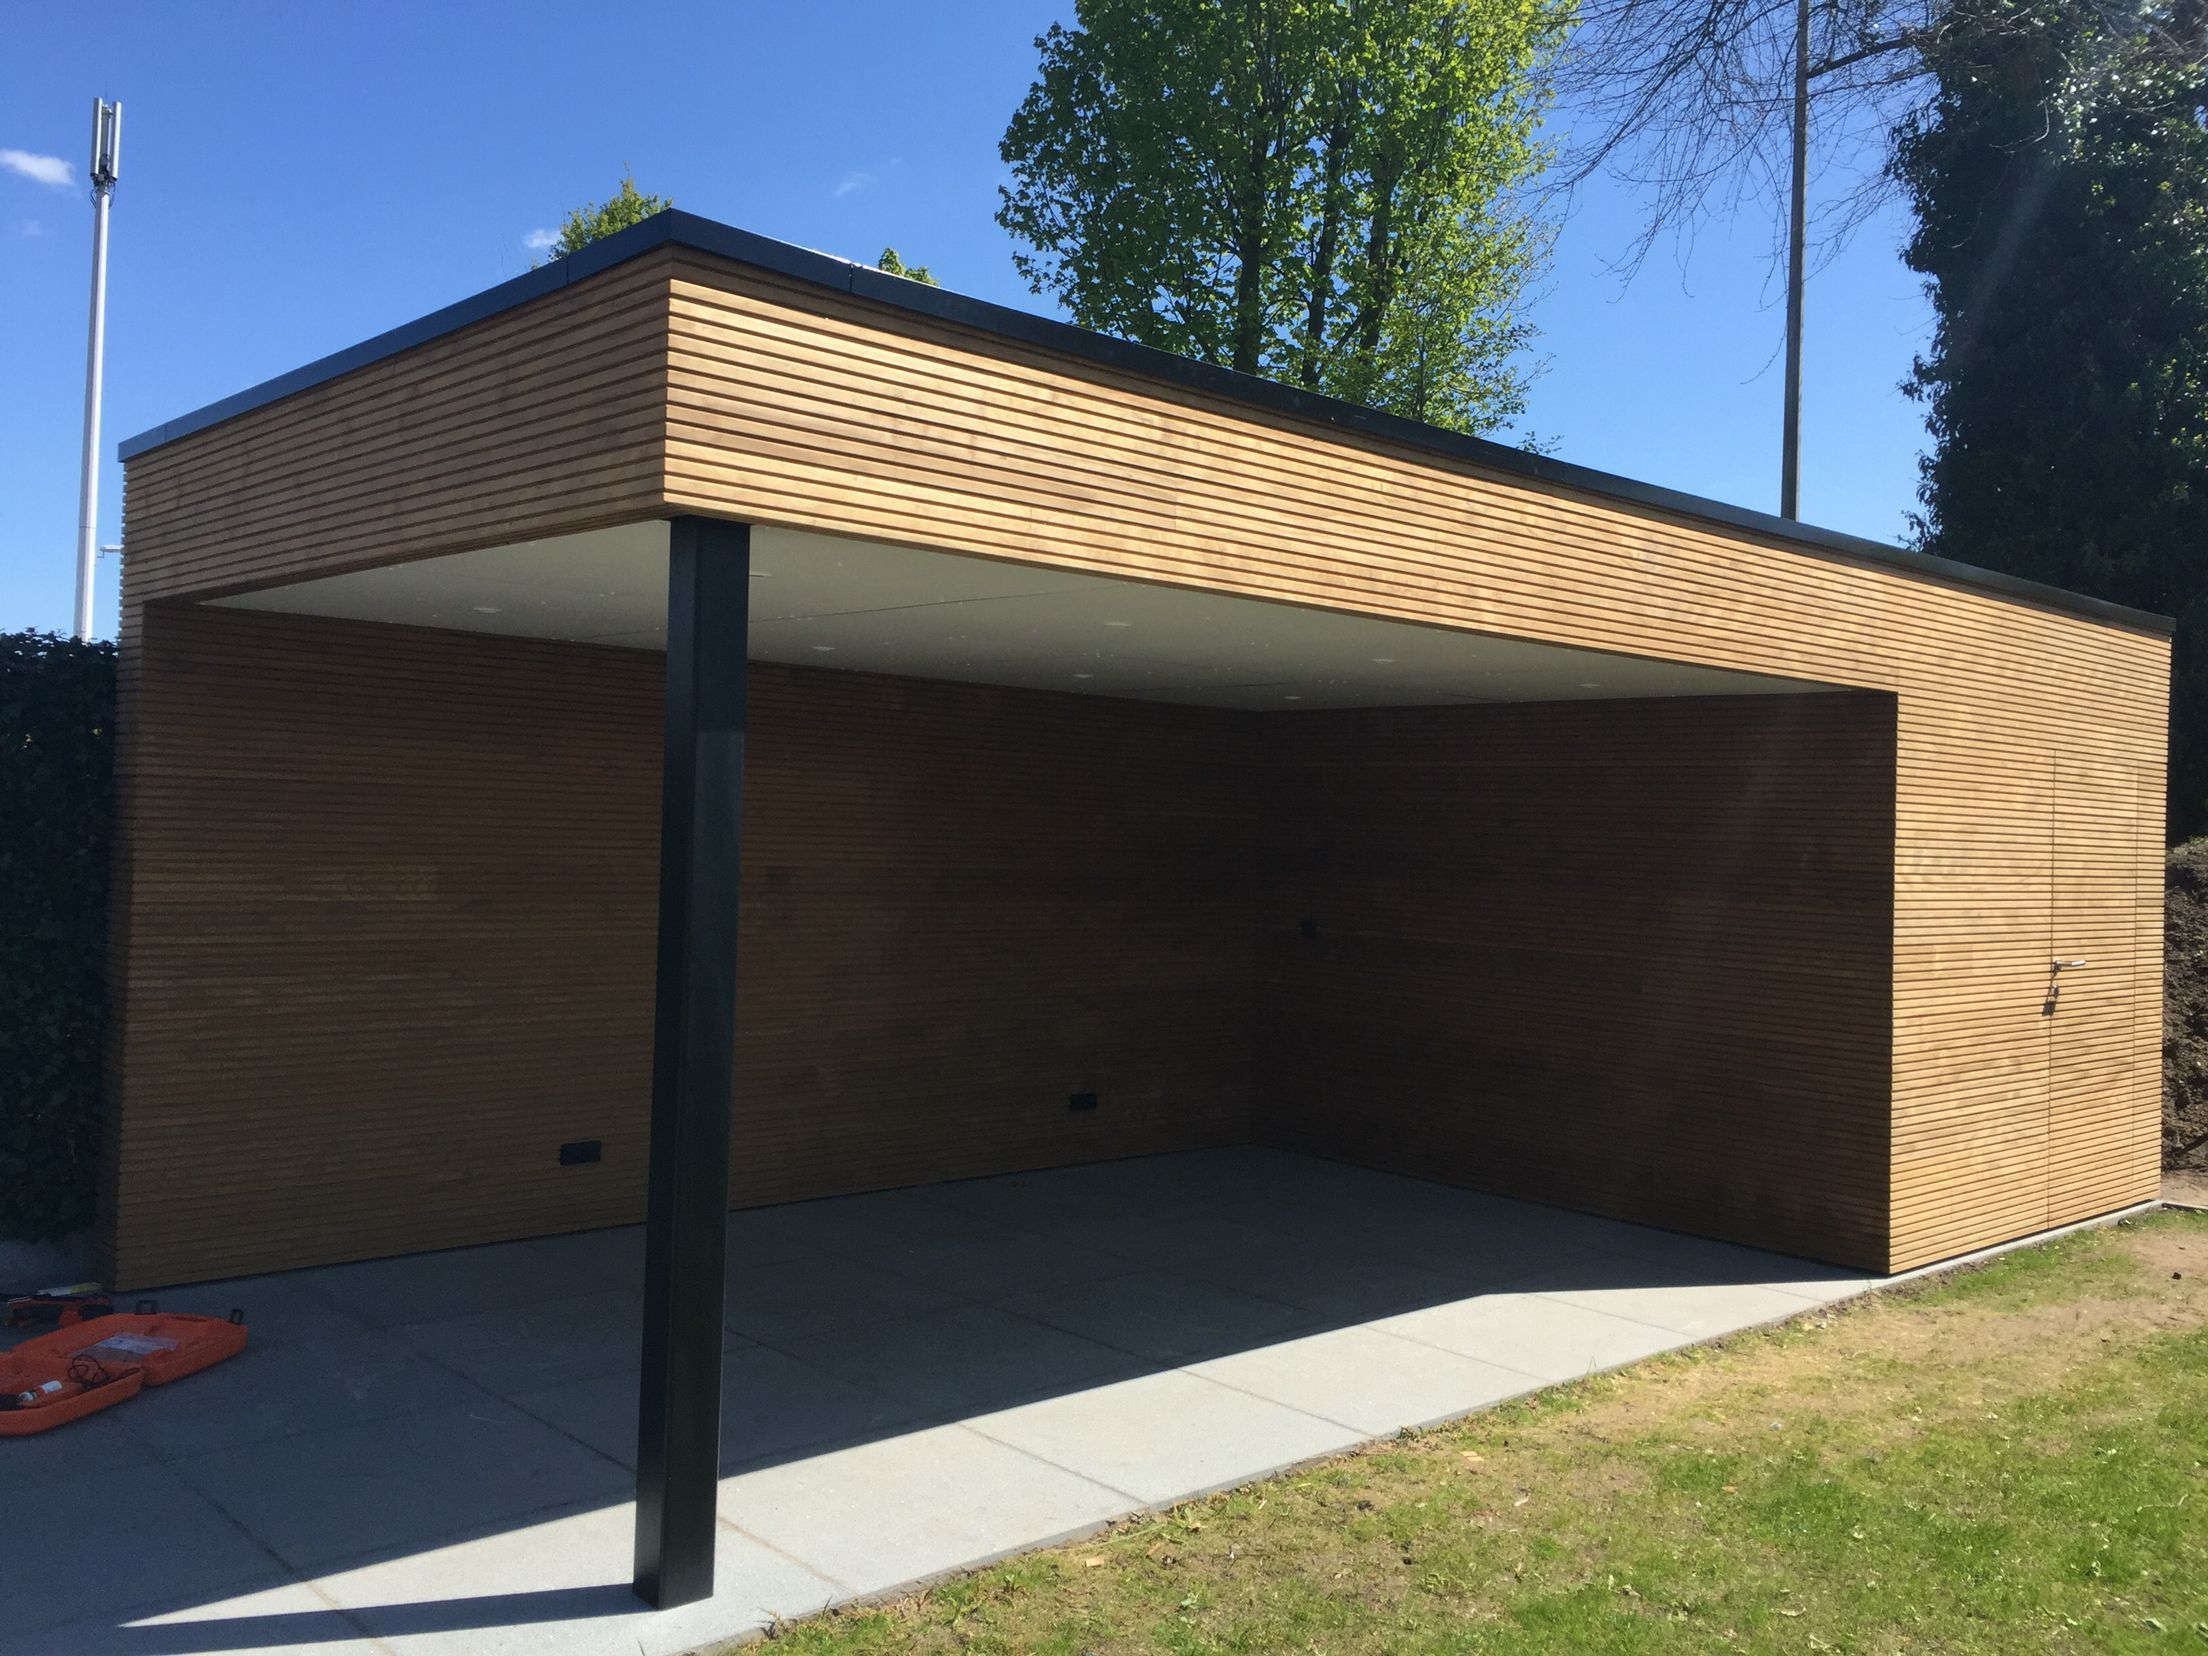 50+ Carports Designs For Minimalist Homes | Carport Modern ... pour Abri Jardin Ouvert